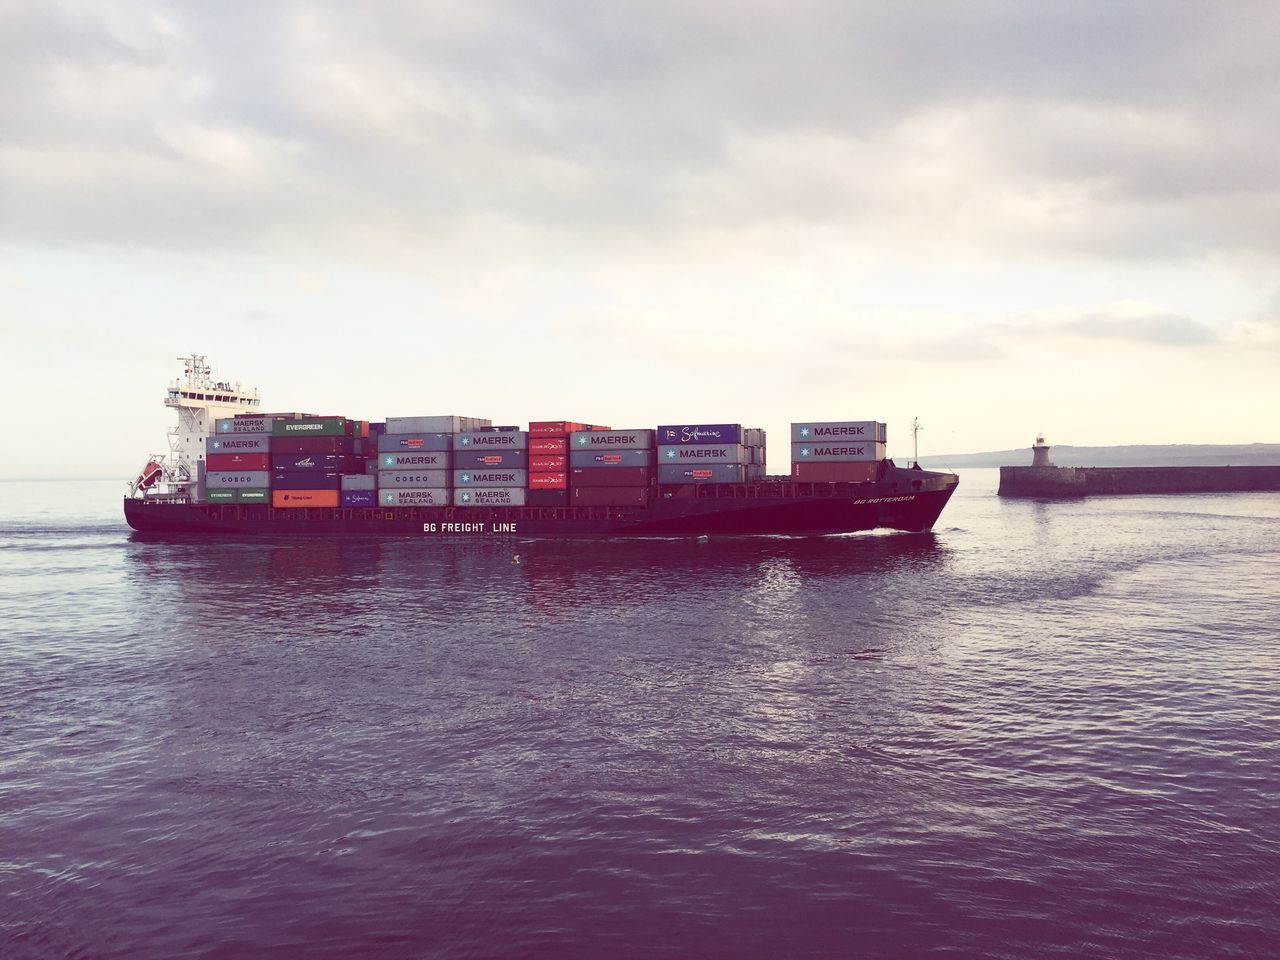 transportation, freight transportation, nautical vessel, water, cargo container, mode of transport, container ship, sea, waterfront, shipping, container, day, sky, cloud - sky, outdoors, industry, scenics, nature, commercial dock, sailing, no people, beauty in nature, harbor, shipyard